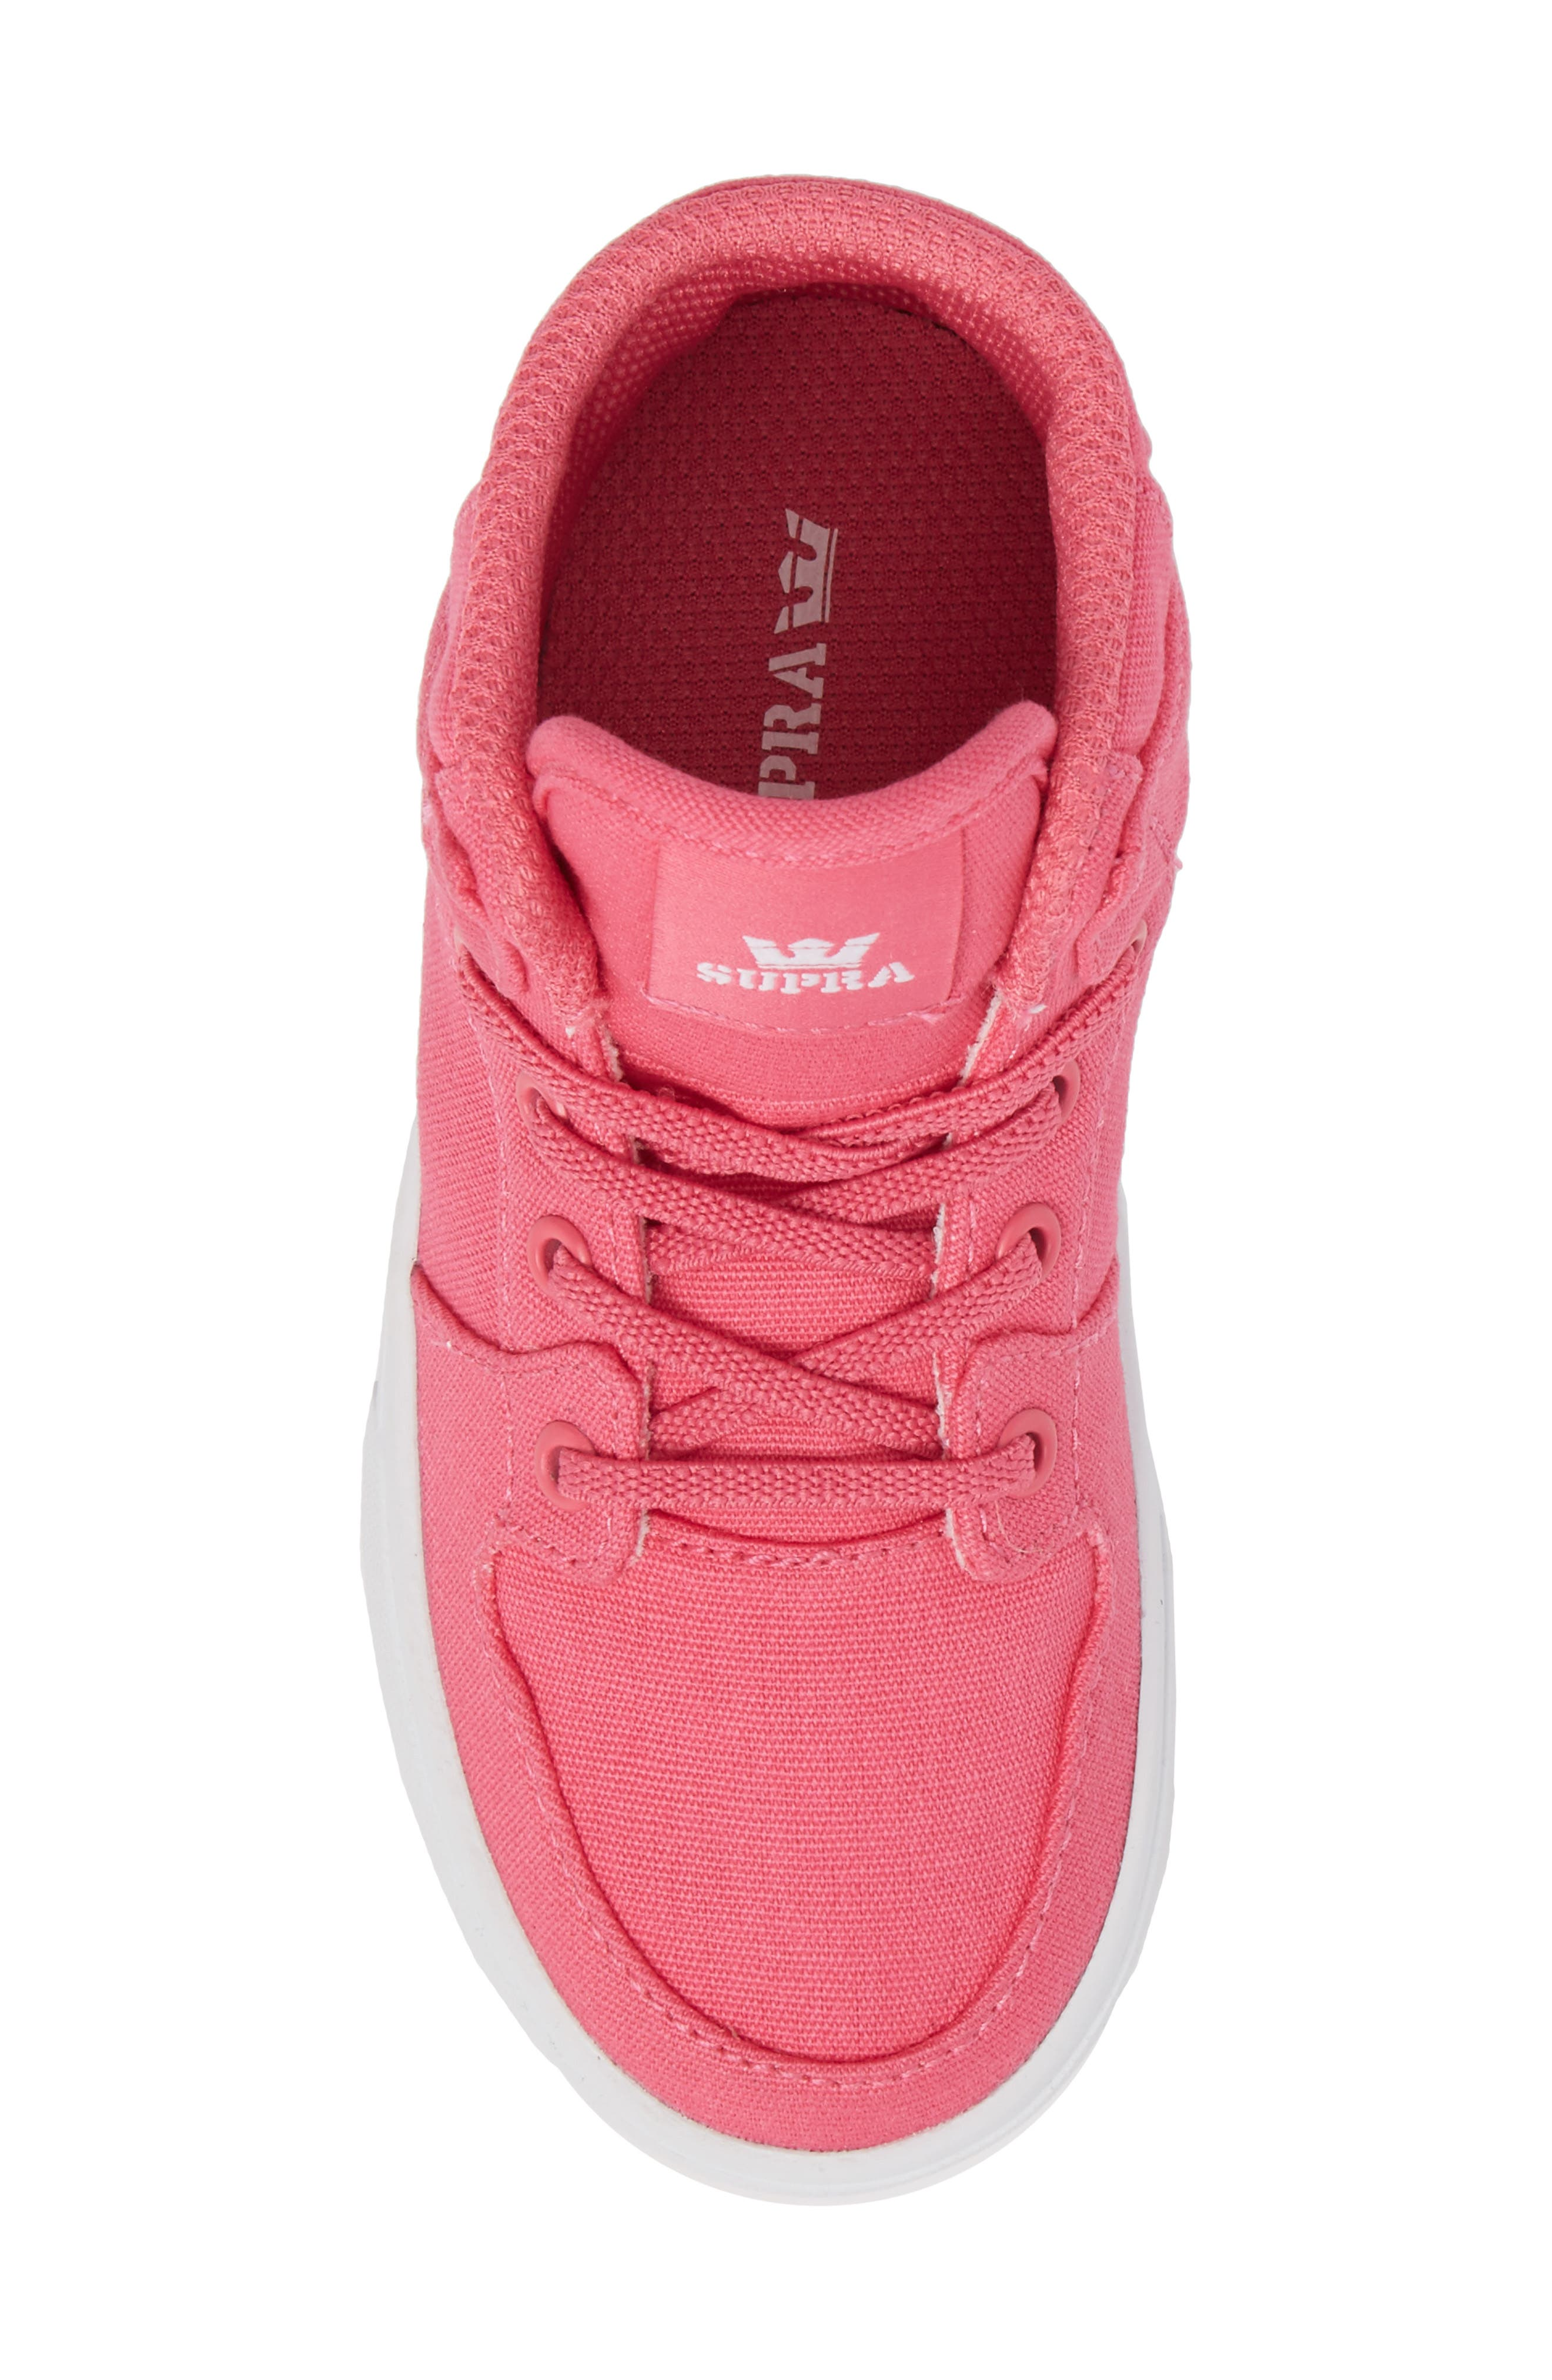 'Vaider' High Top Sneaker,                             Alternate thumbnail 5, color,                             Pink